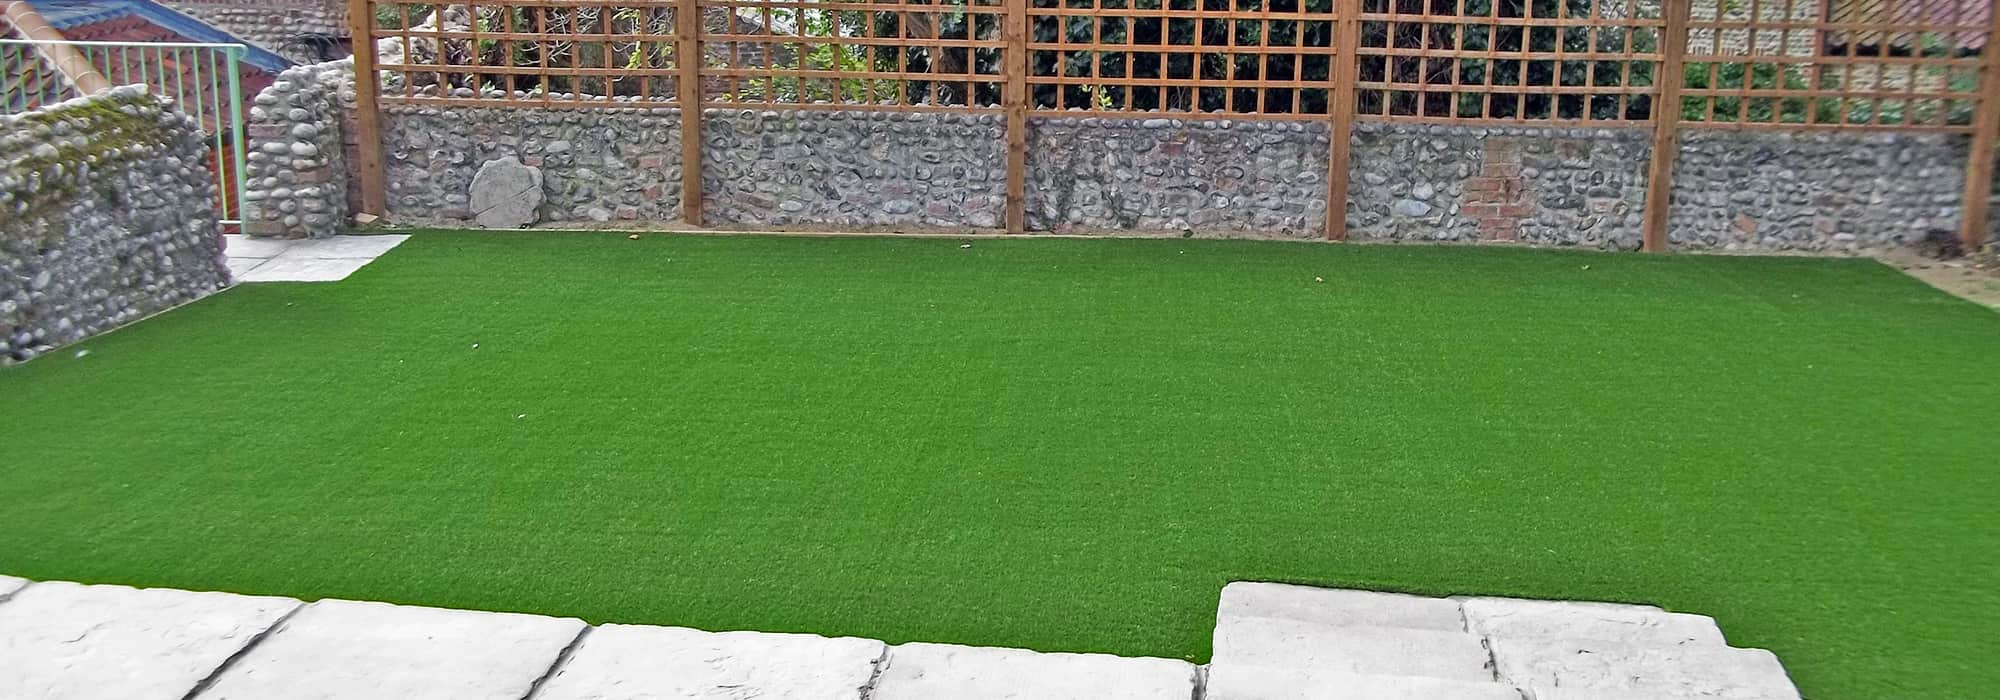 Artificial grass - 3